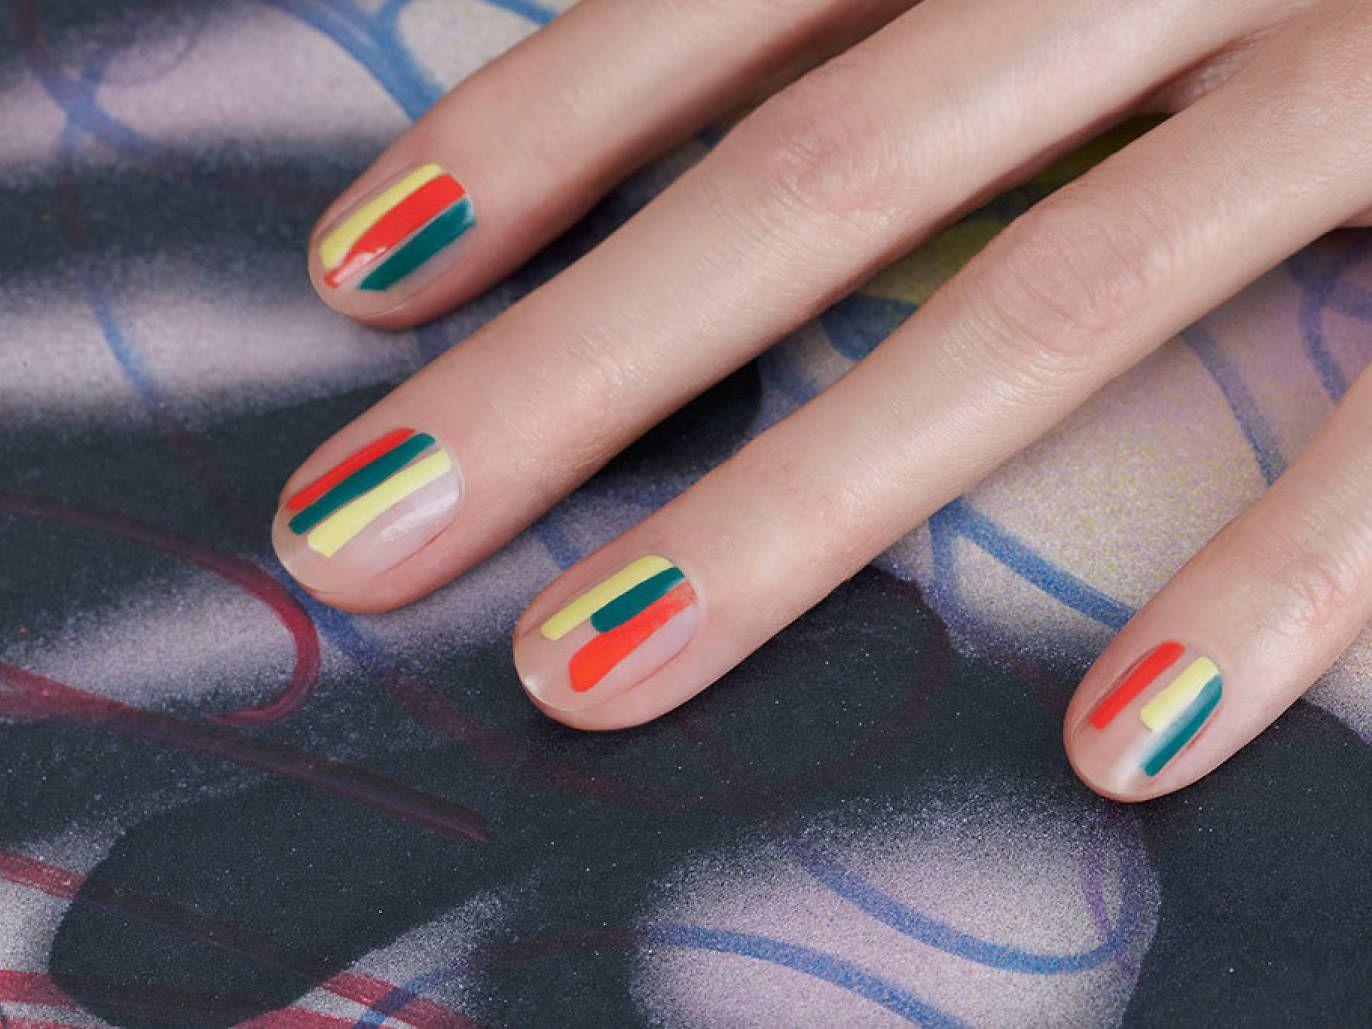 The Best Nail Salons In Nyc Nail Salons Makeup And Nail Nail